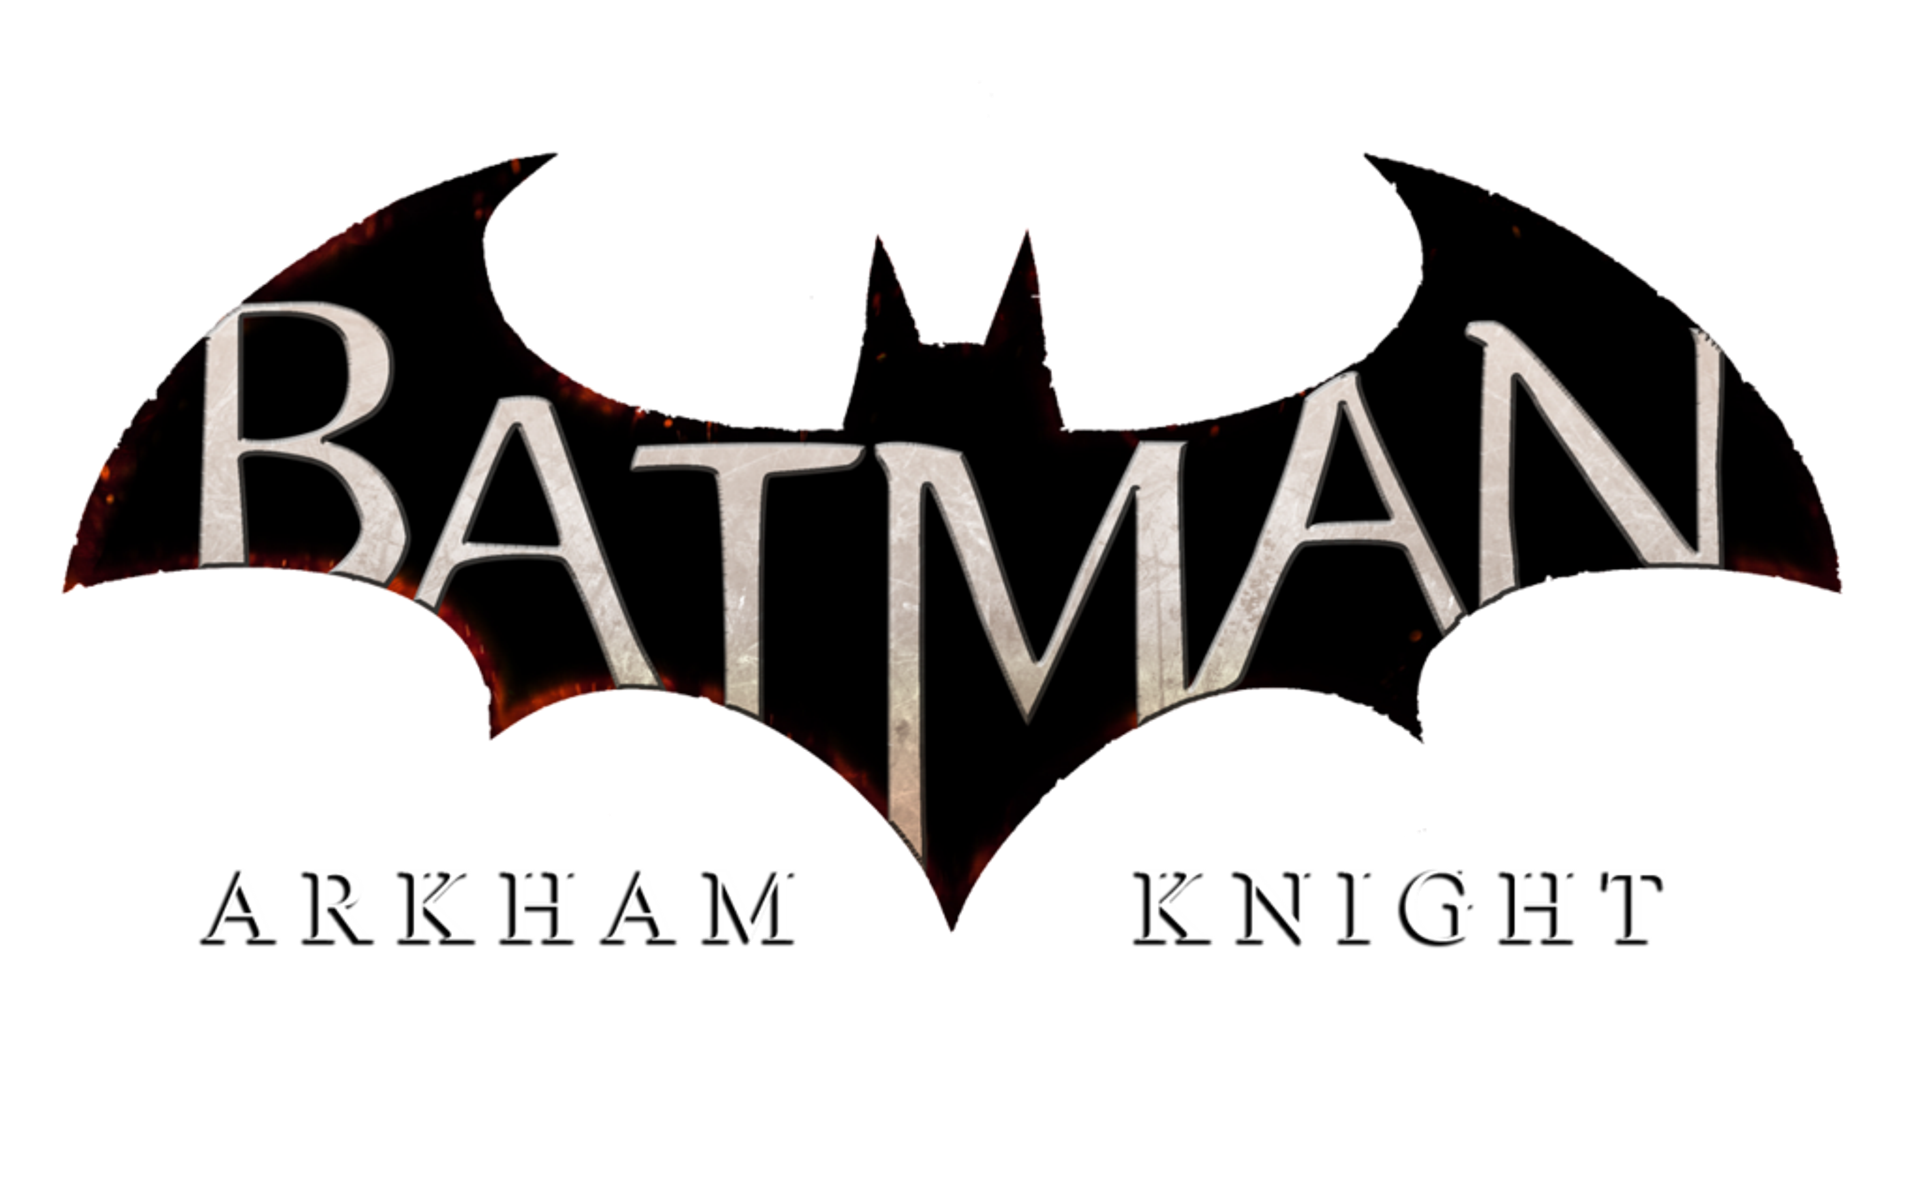 Batman Arkham Knight Logo Wallpaper.